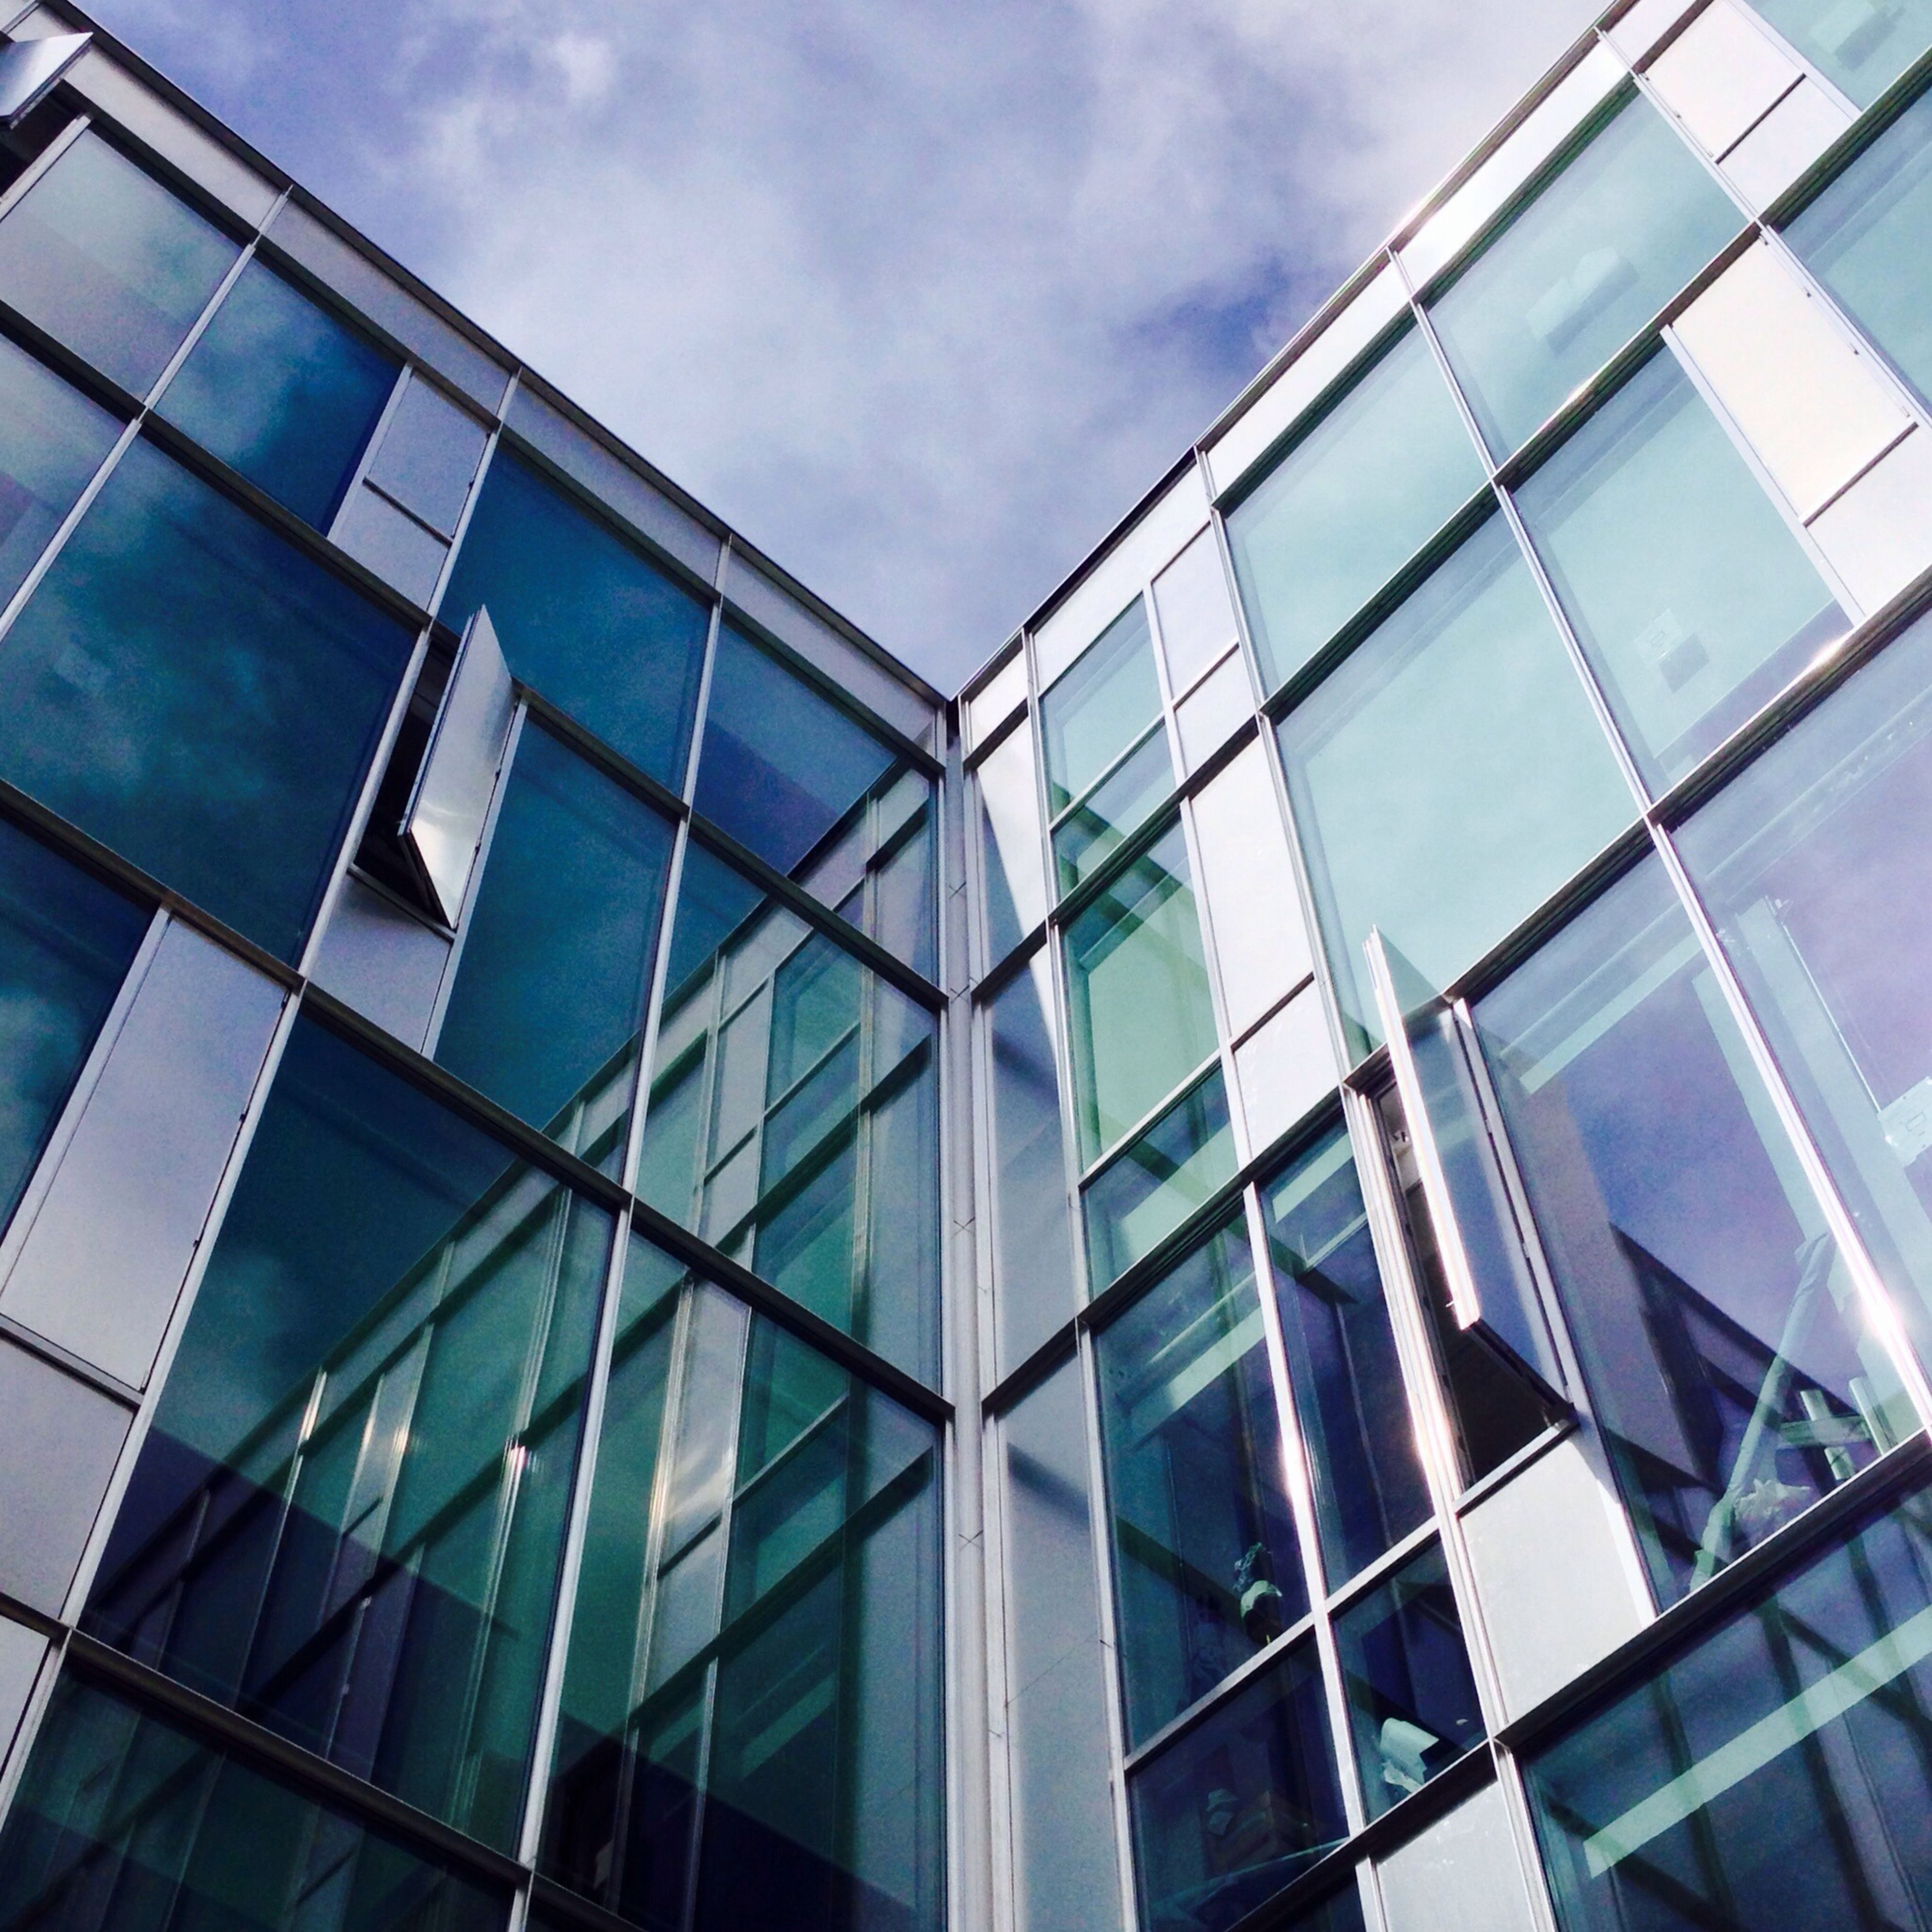 architecture, building exterior, built structure, modern, low angle view, glass - material, office building, reflection, window, city, skyscraper, building, glass, sky, tall - high, transparent, tower, day, cloud - sky, no people